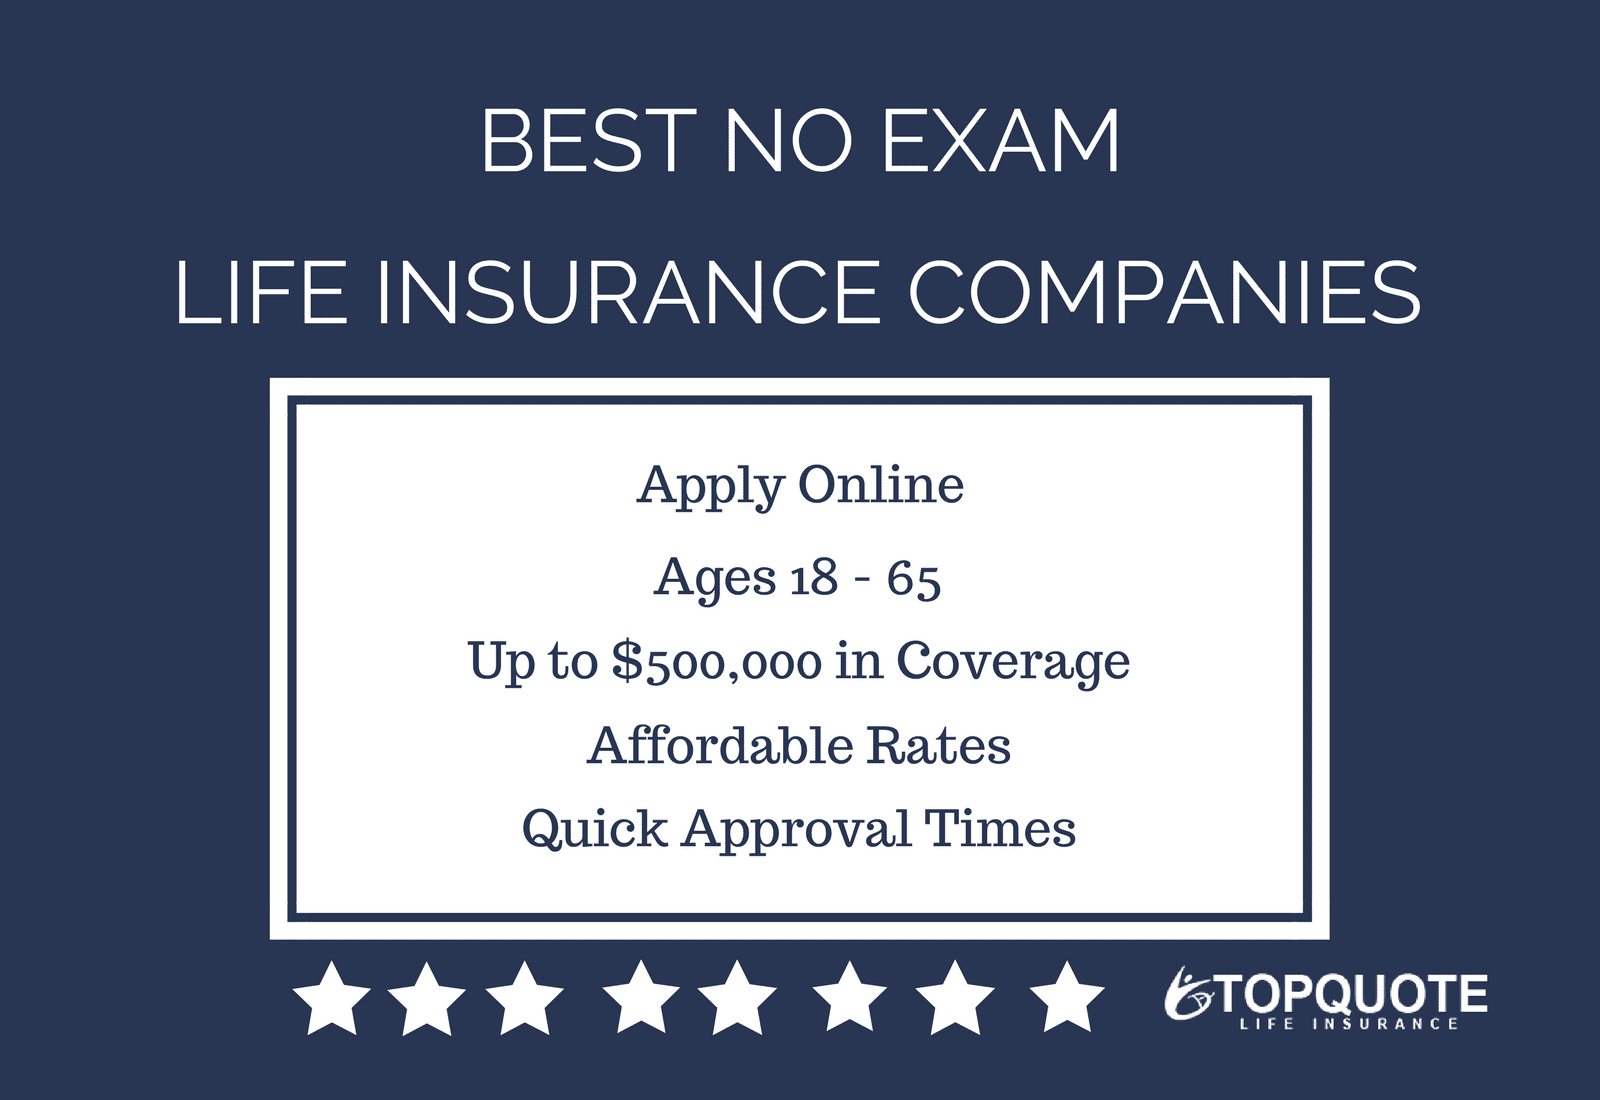 Online Quote Term Life Insurance Gorgeous Accelerated No Medical Exam Term Life Insurance Quick & Simple